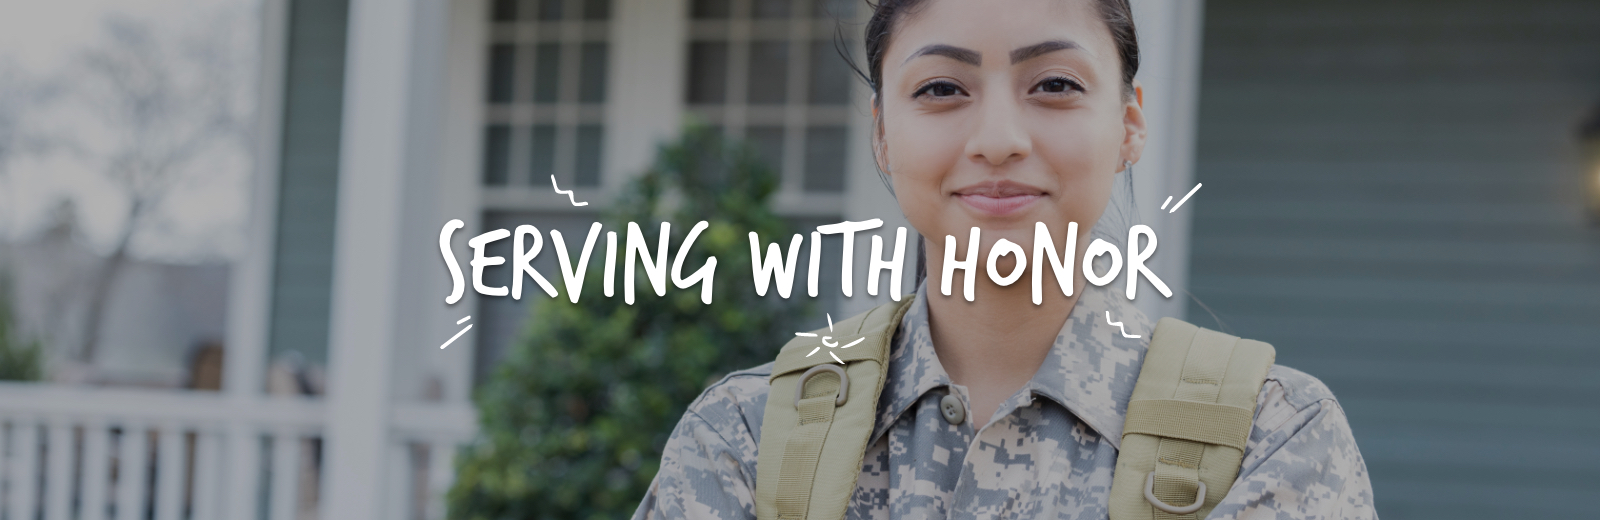 Serving with honor, women in military uniform smiling